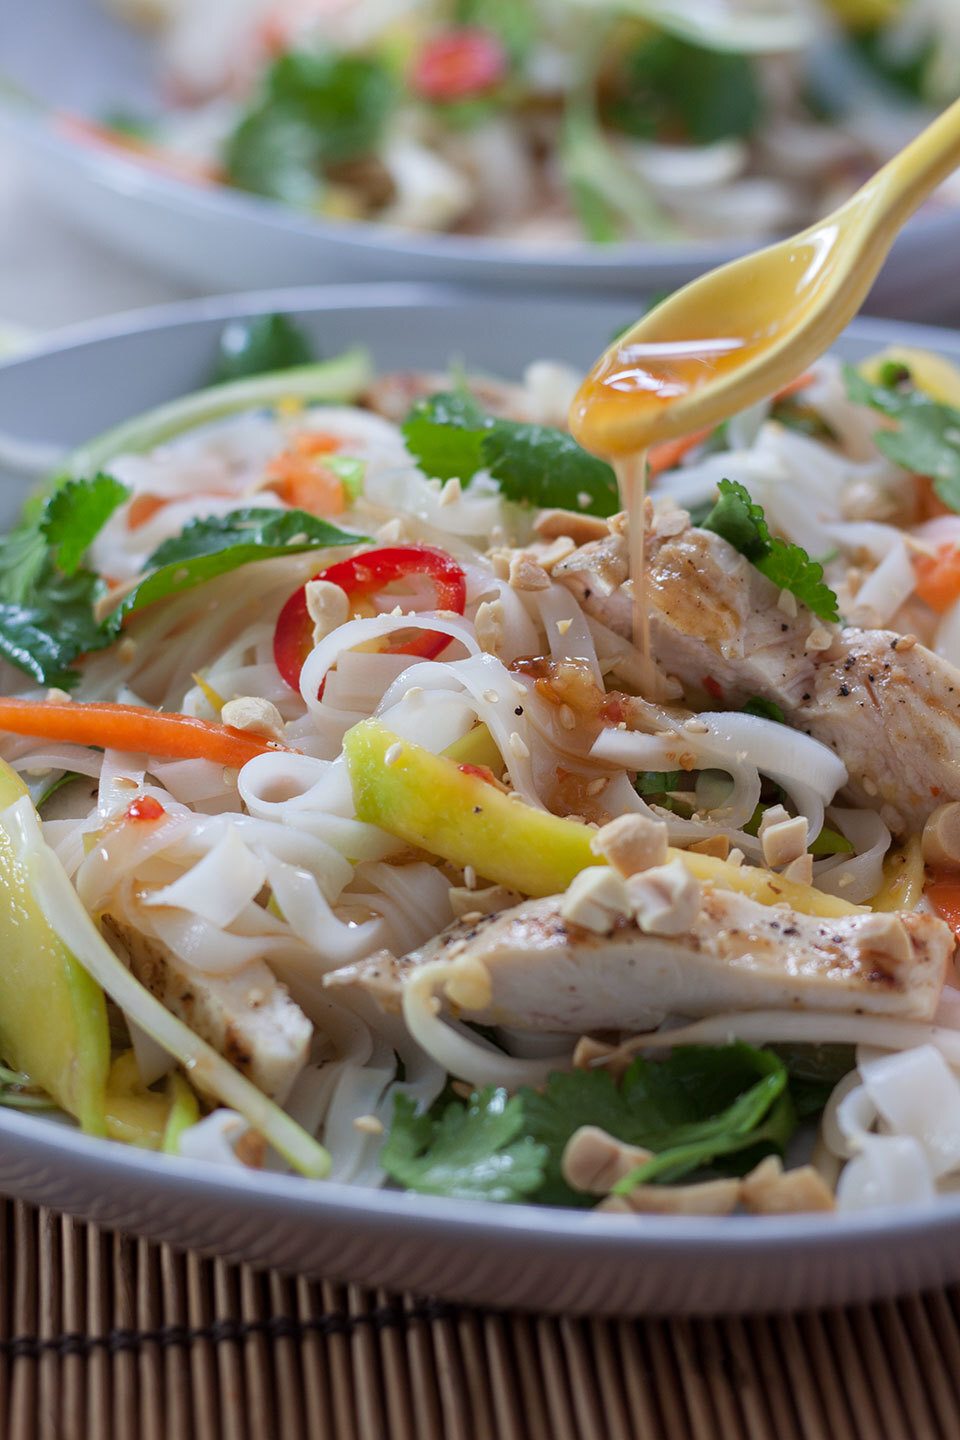 Chicken noodle salad with sweet chilli dressing